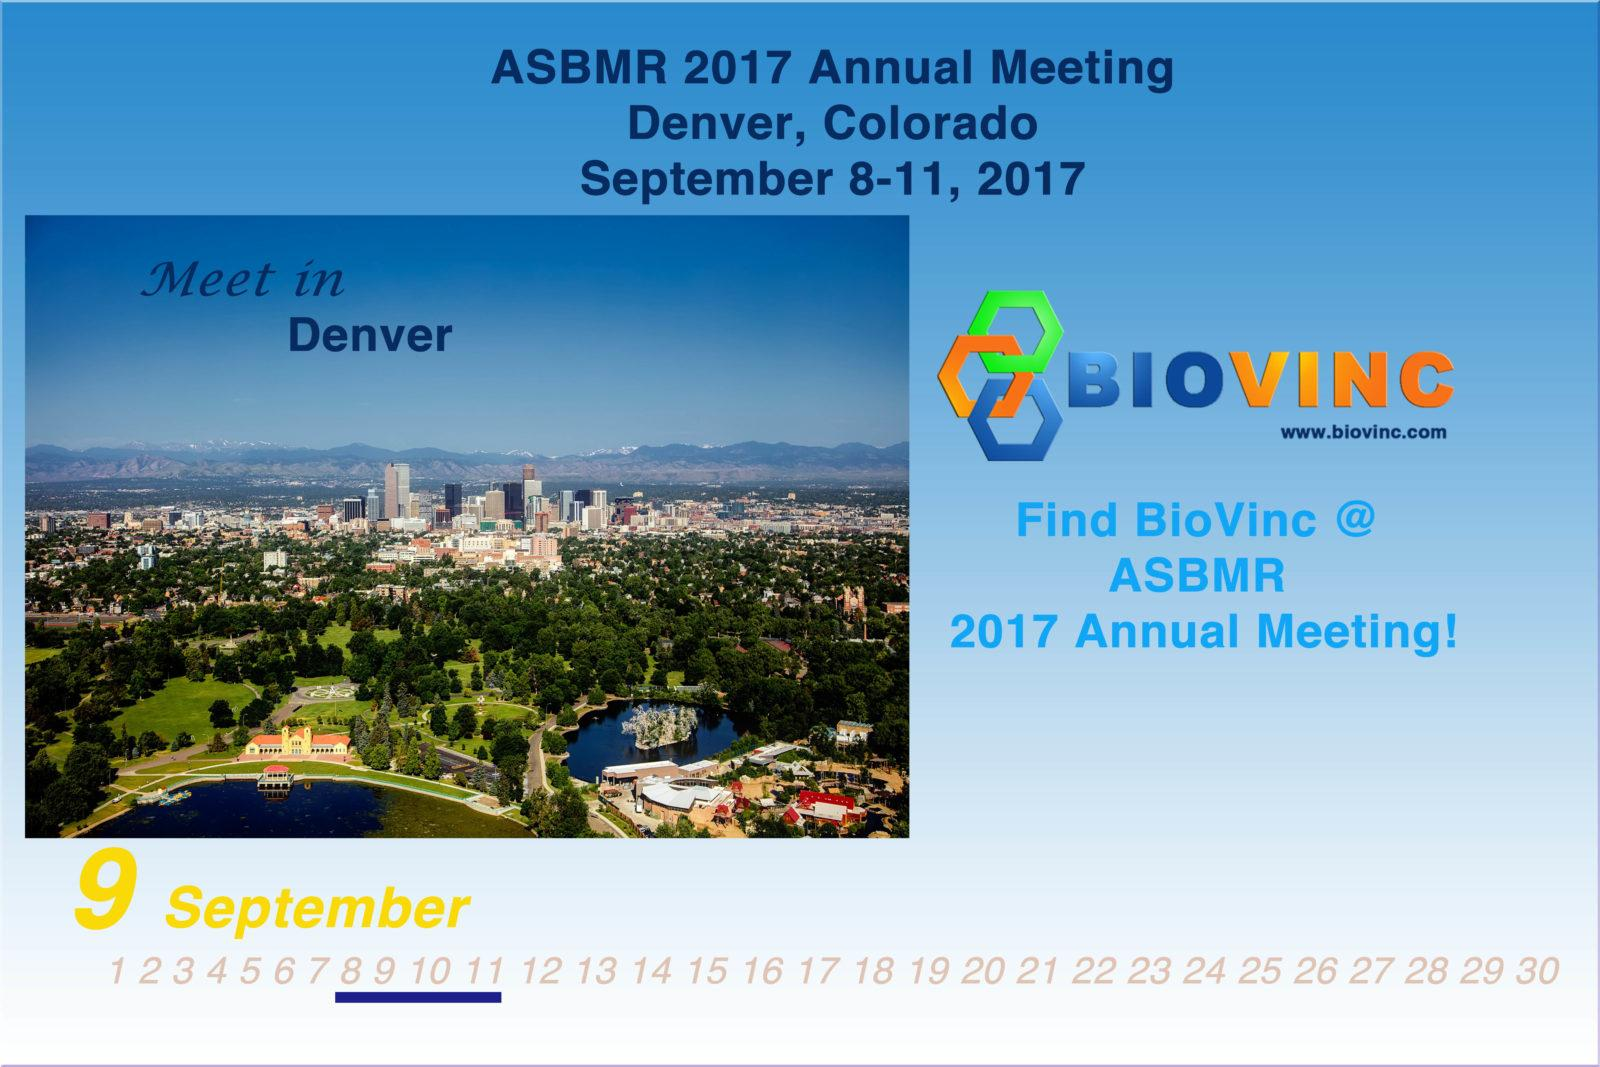 BioVinc will present new data at the 2017 ASBMR Annual Meeting